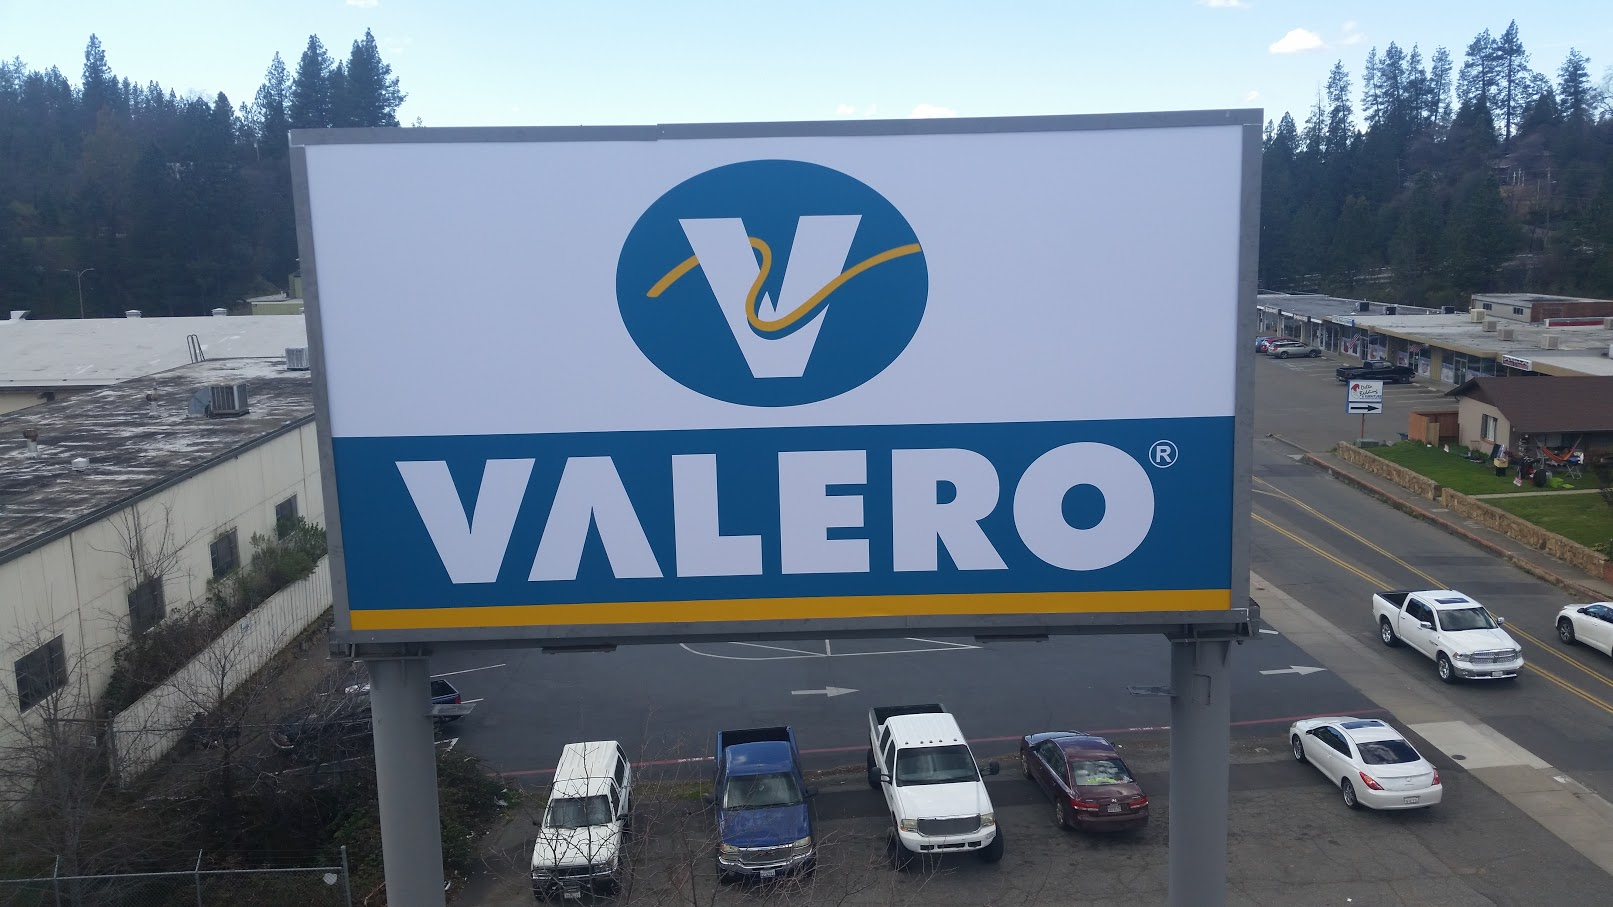 Valero Pylon